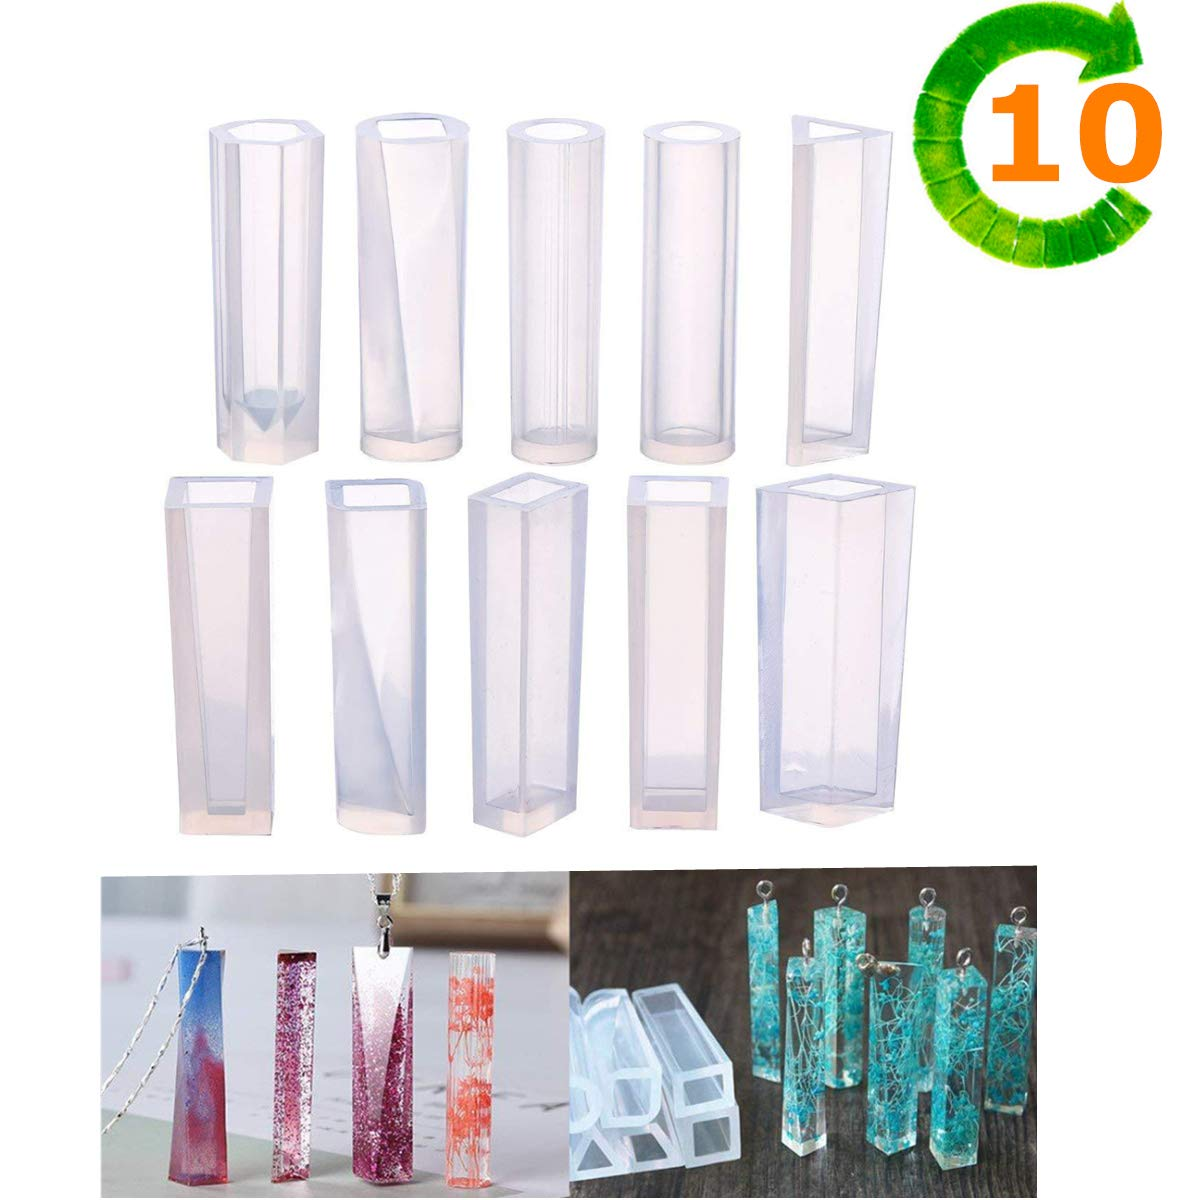 Silicone Resin Kits Casting Molud Included 10 PCS Pendant Moulds for Craft Making DIY